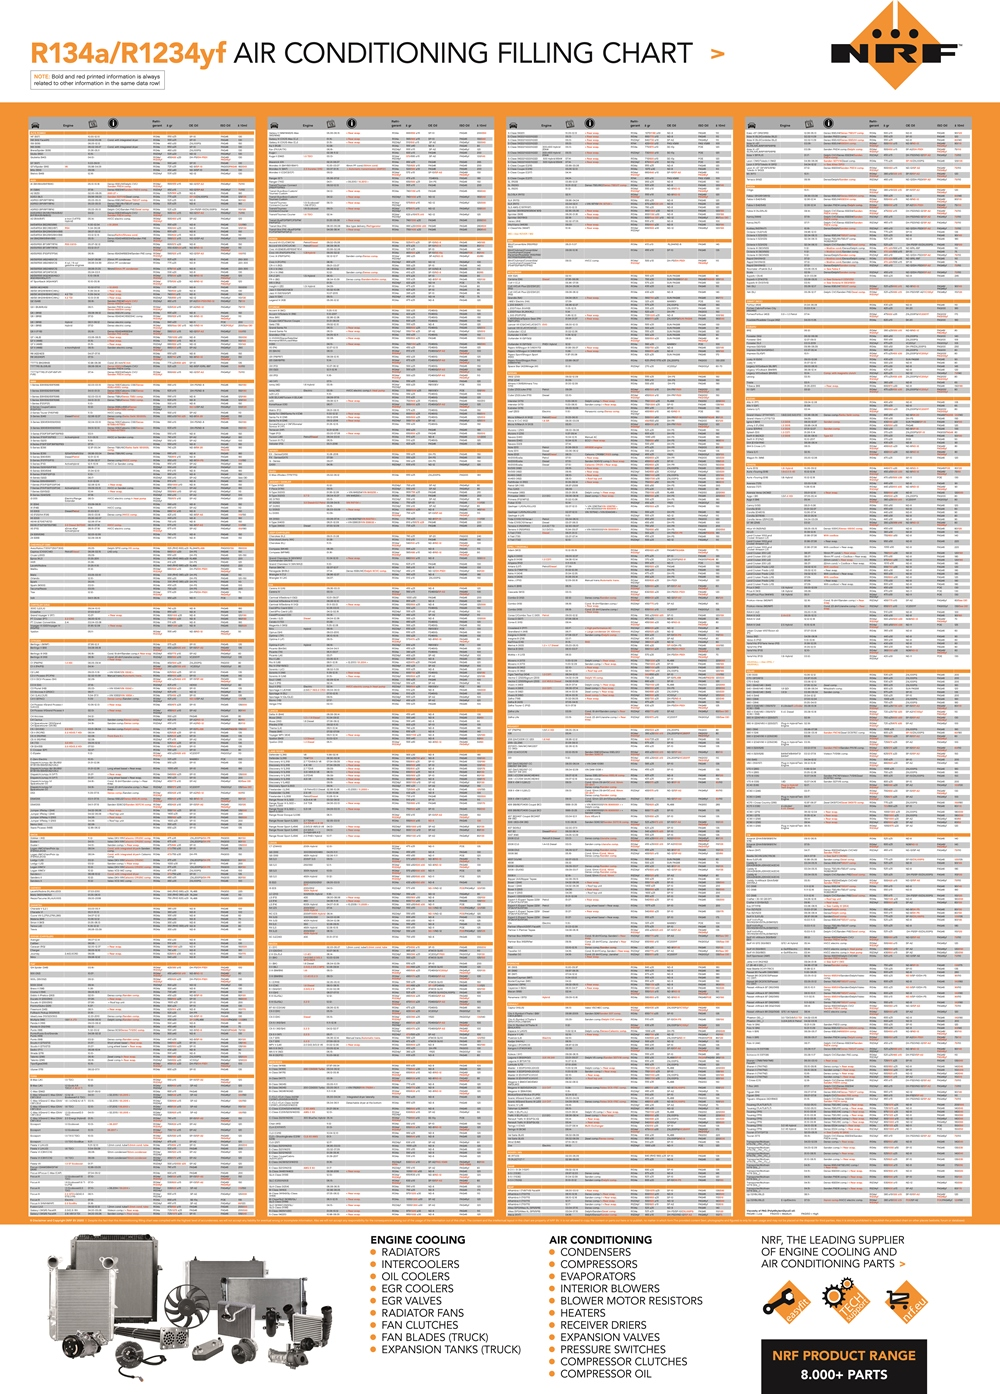 Nrf Releases New Air Conditioning Filling Chart Nrf